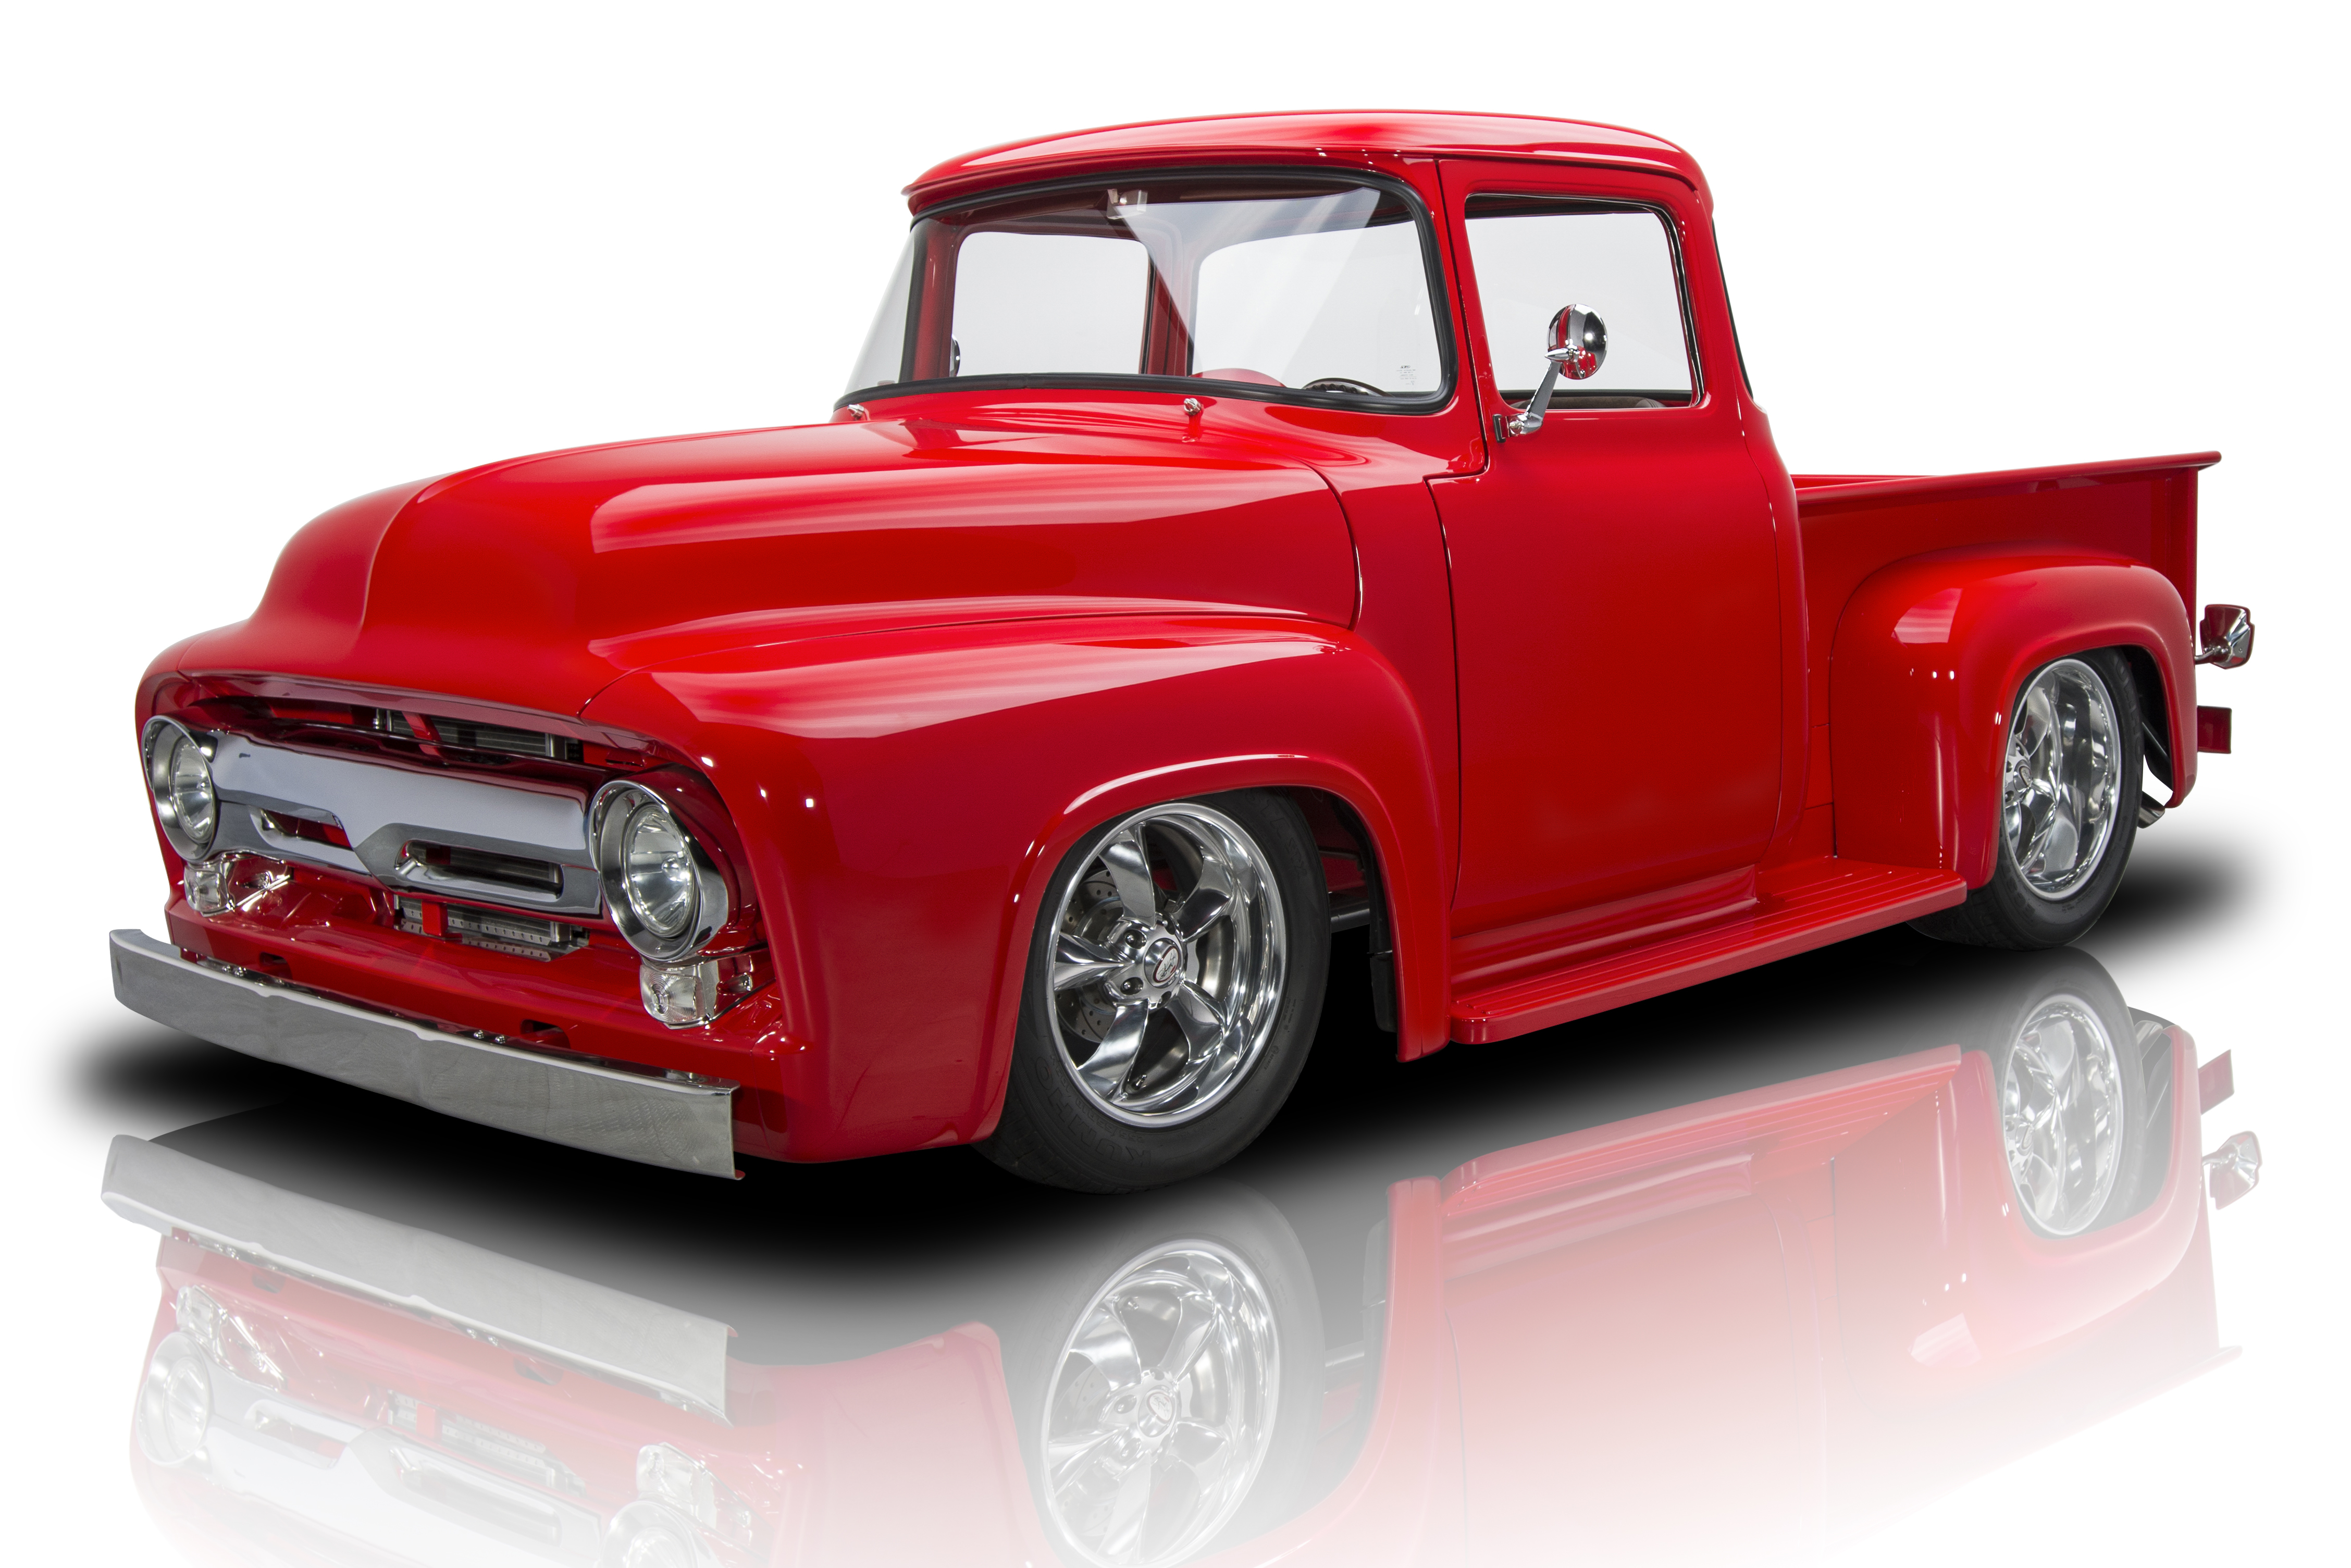 Fuel Injection Service >> 135936 1956 Ford F100   RK Motors Classic and Performance Cars for Sale